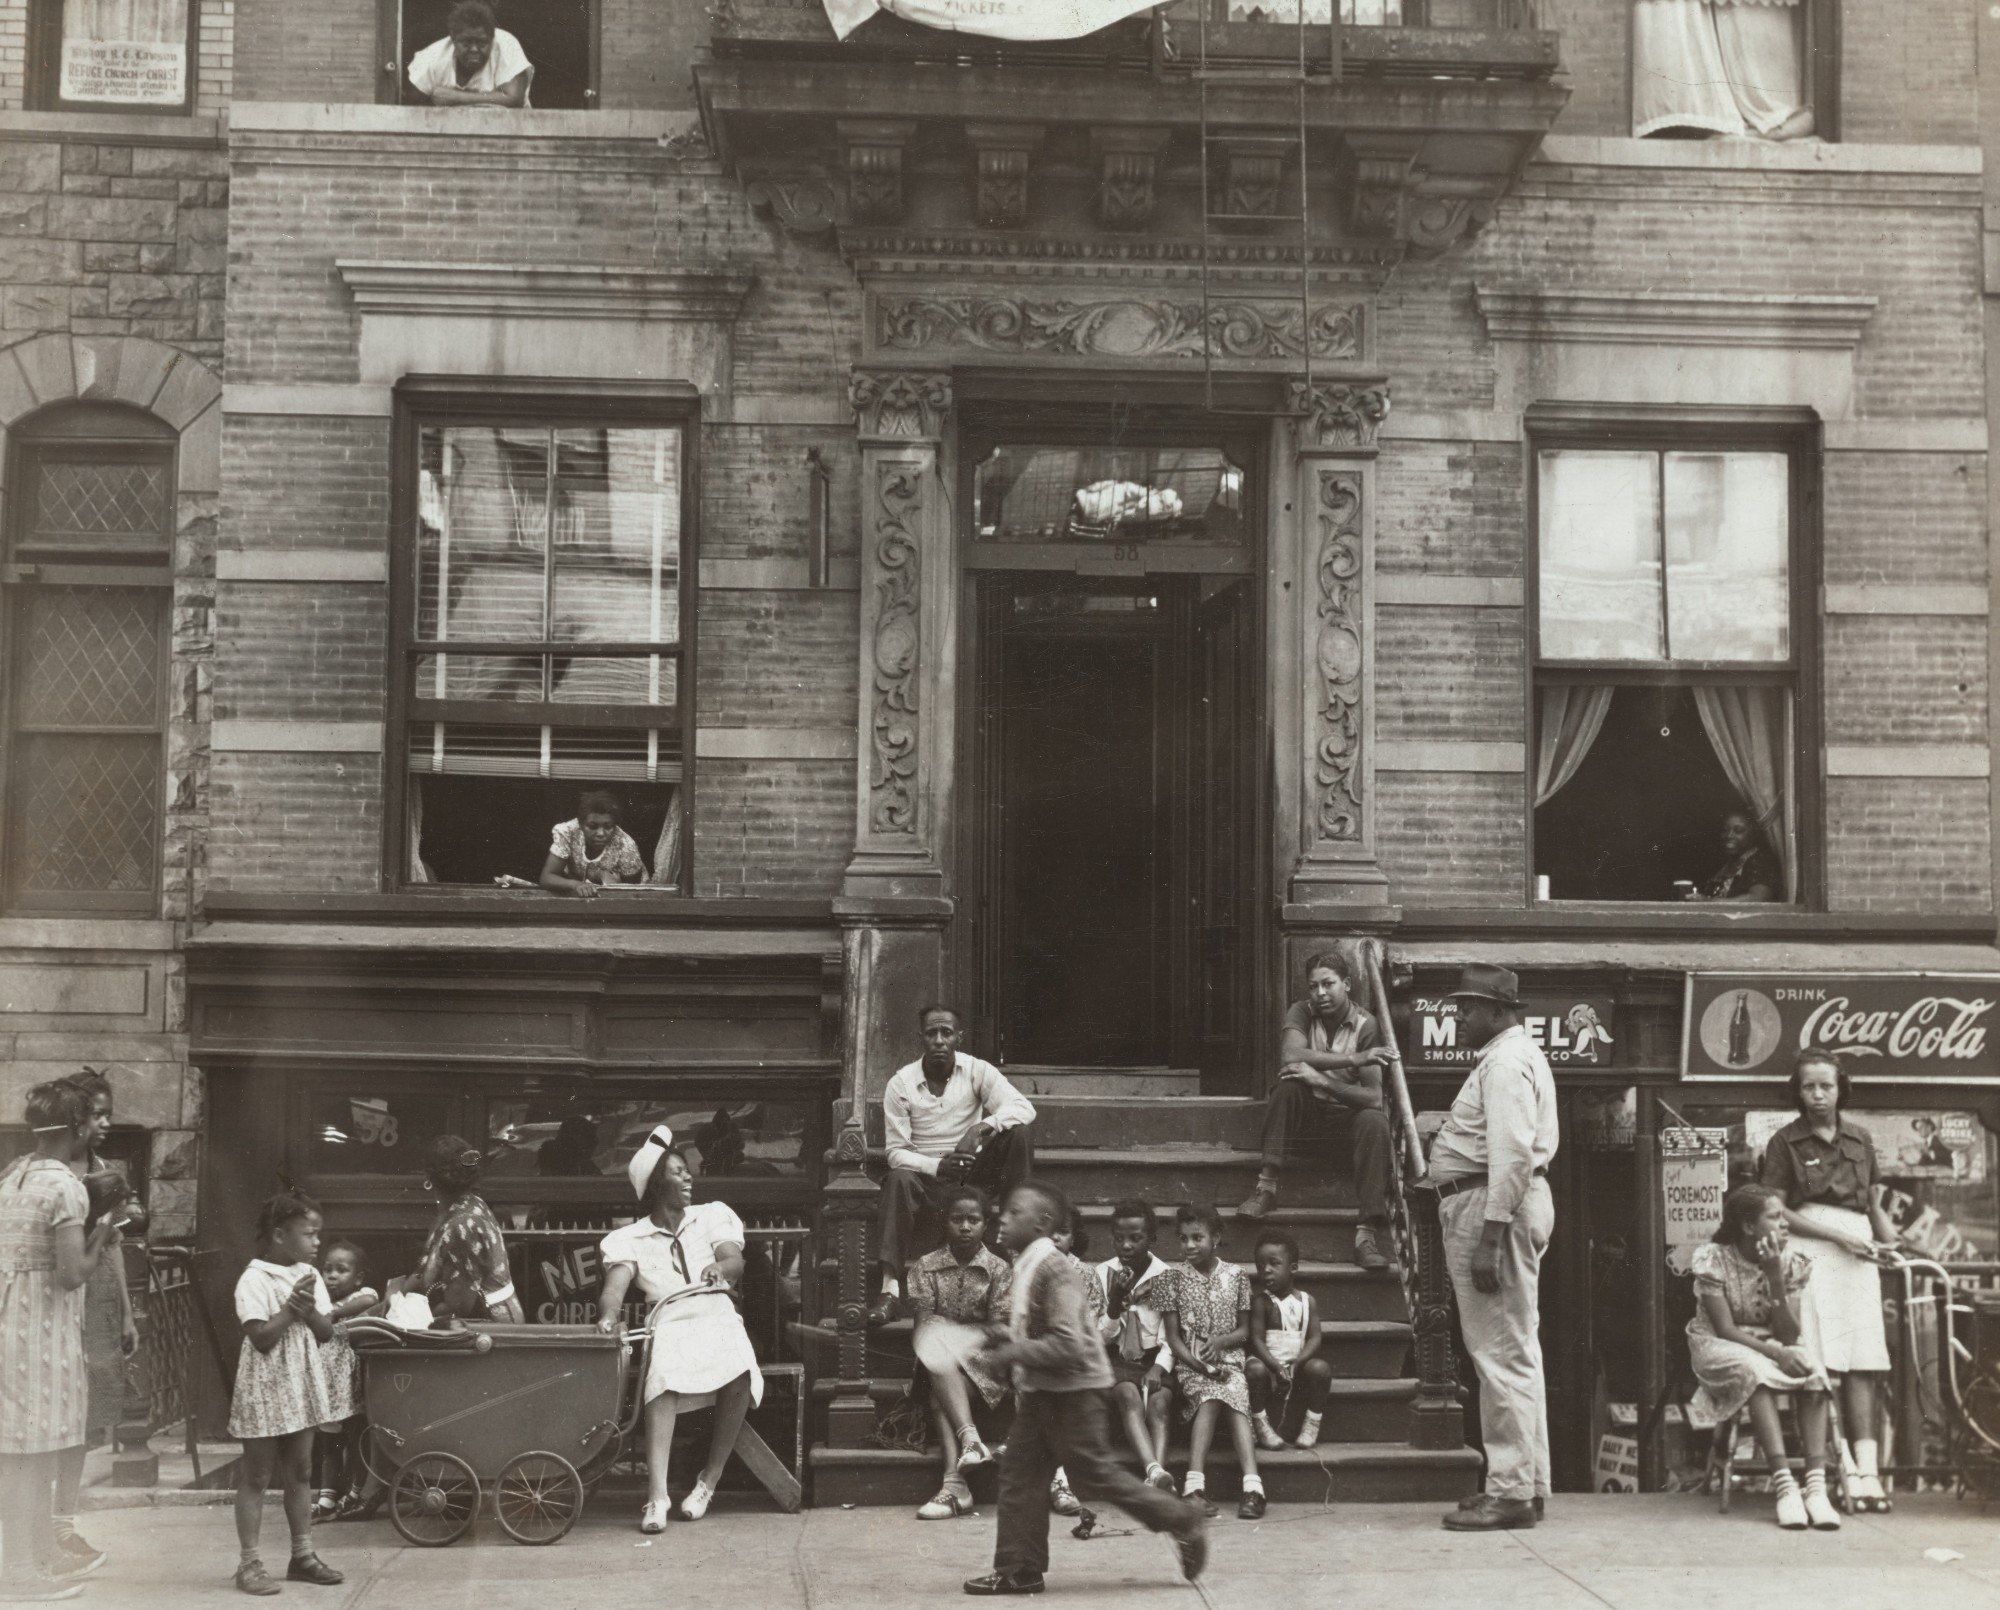 A row house in Harlem